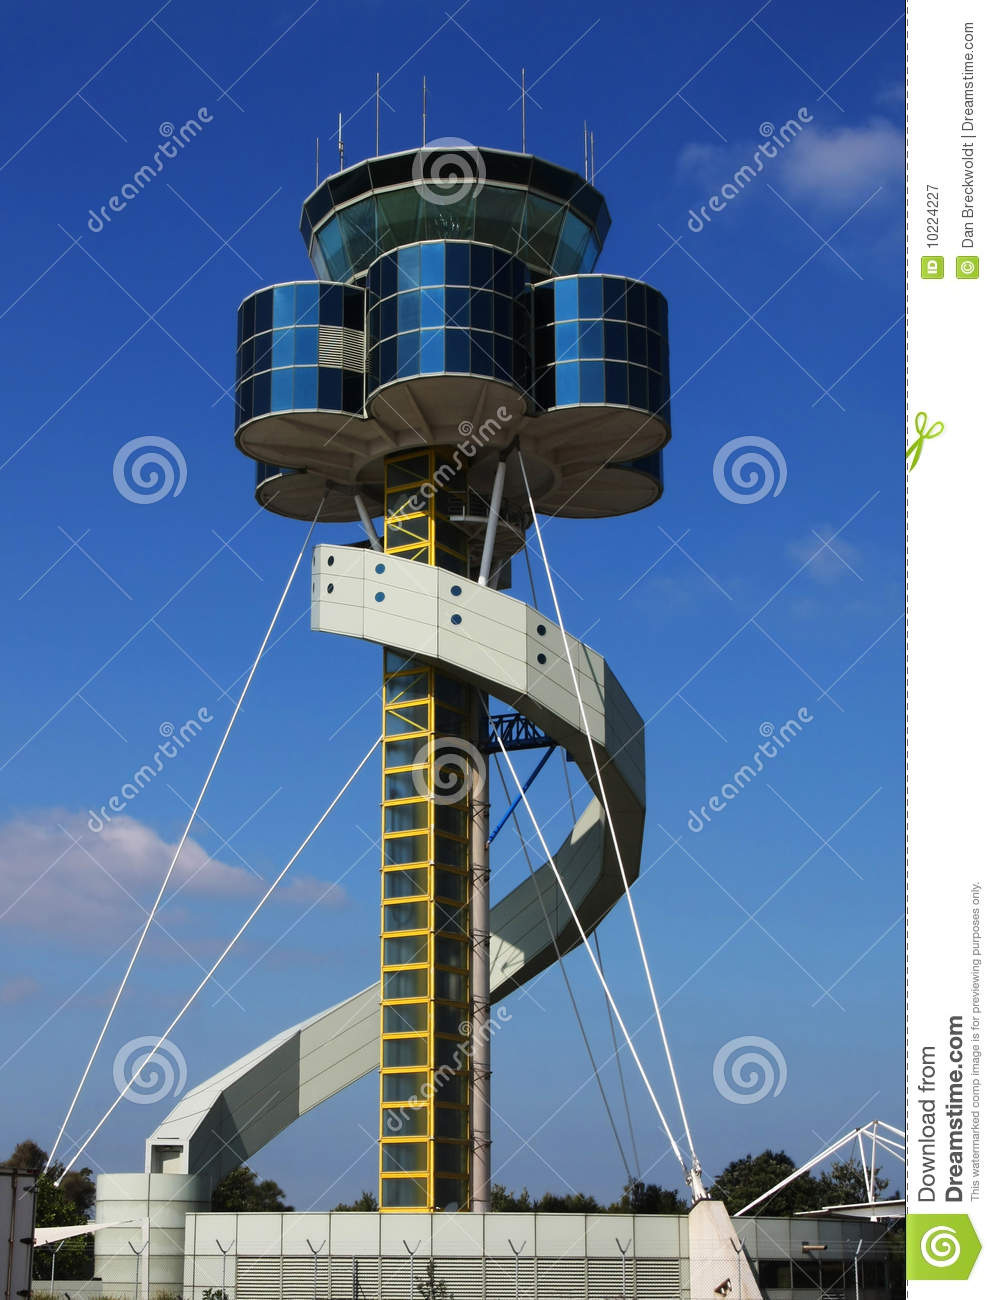 Air Traffic Controller design college sydney